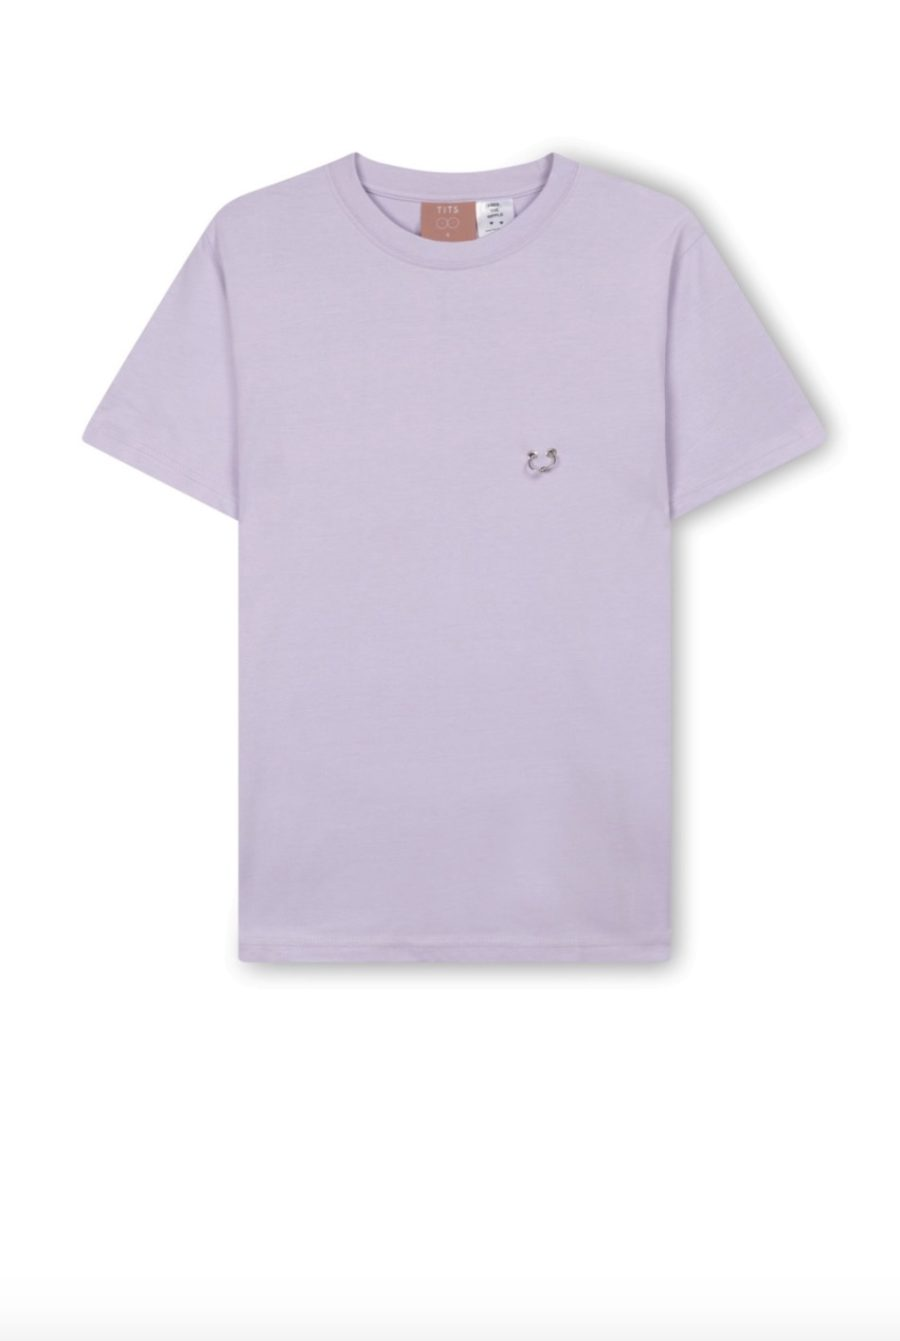 T.I.T.S. - Piercing Tee Lilac